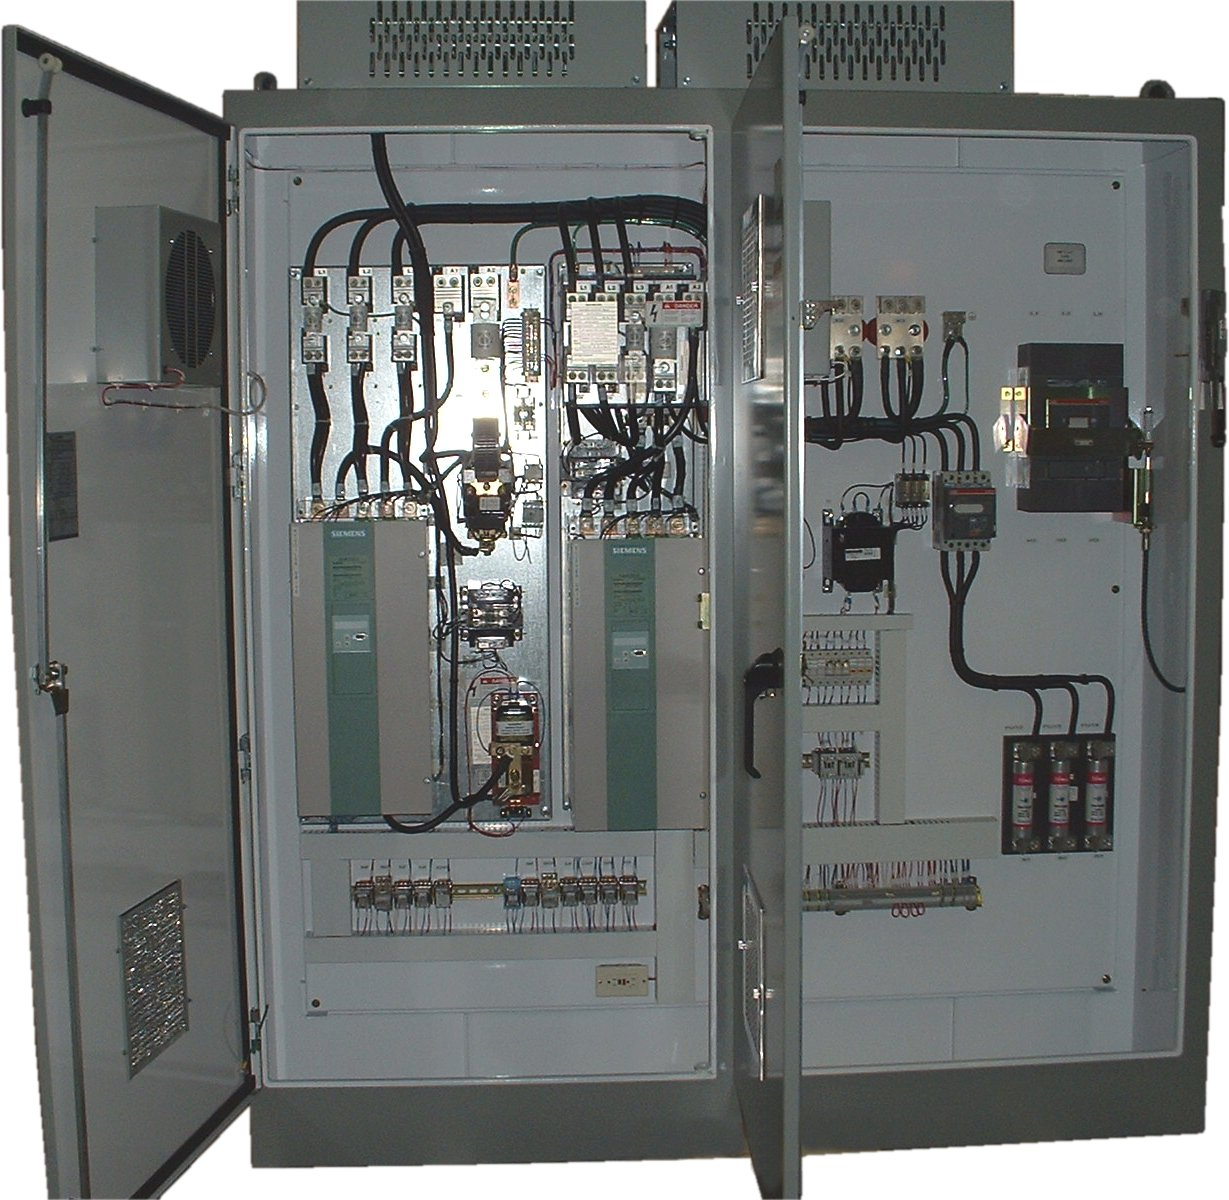 Siemens Vfd Drives Wiring Diagram 33 Images Dc Drive Slitter Recoiler Braner Usa 395 009 Interior Joliet Technologies Ac Controllers And Vsd By